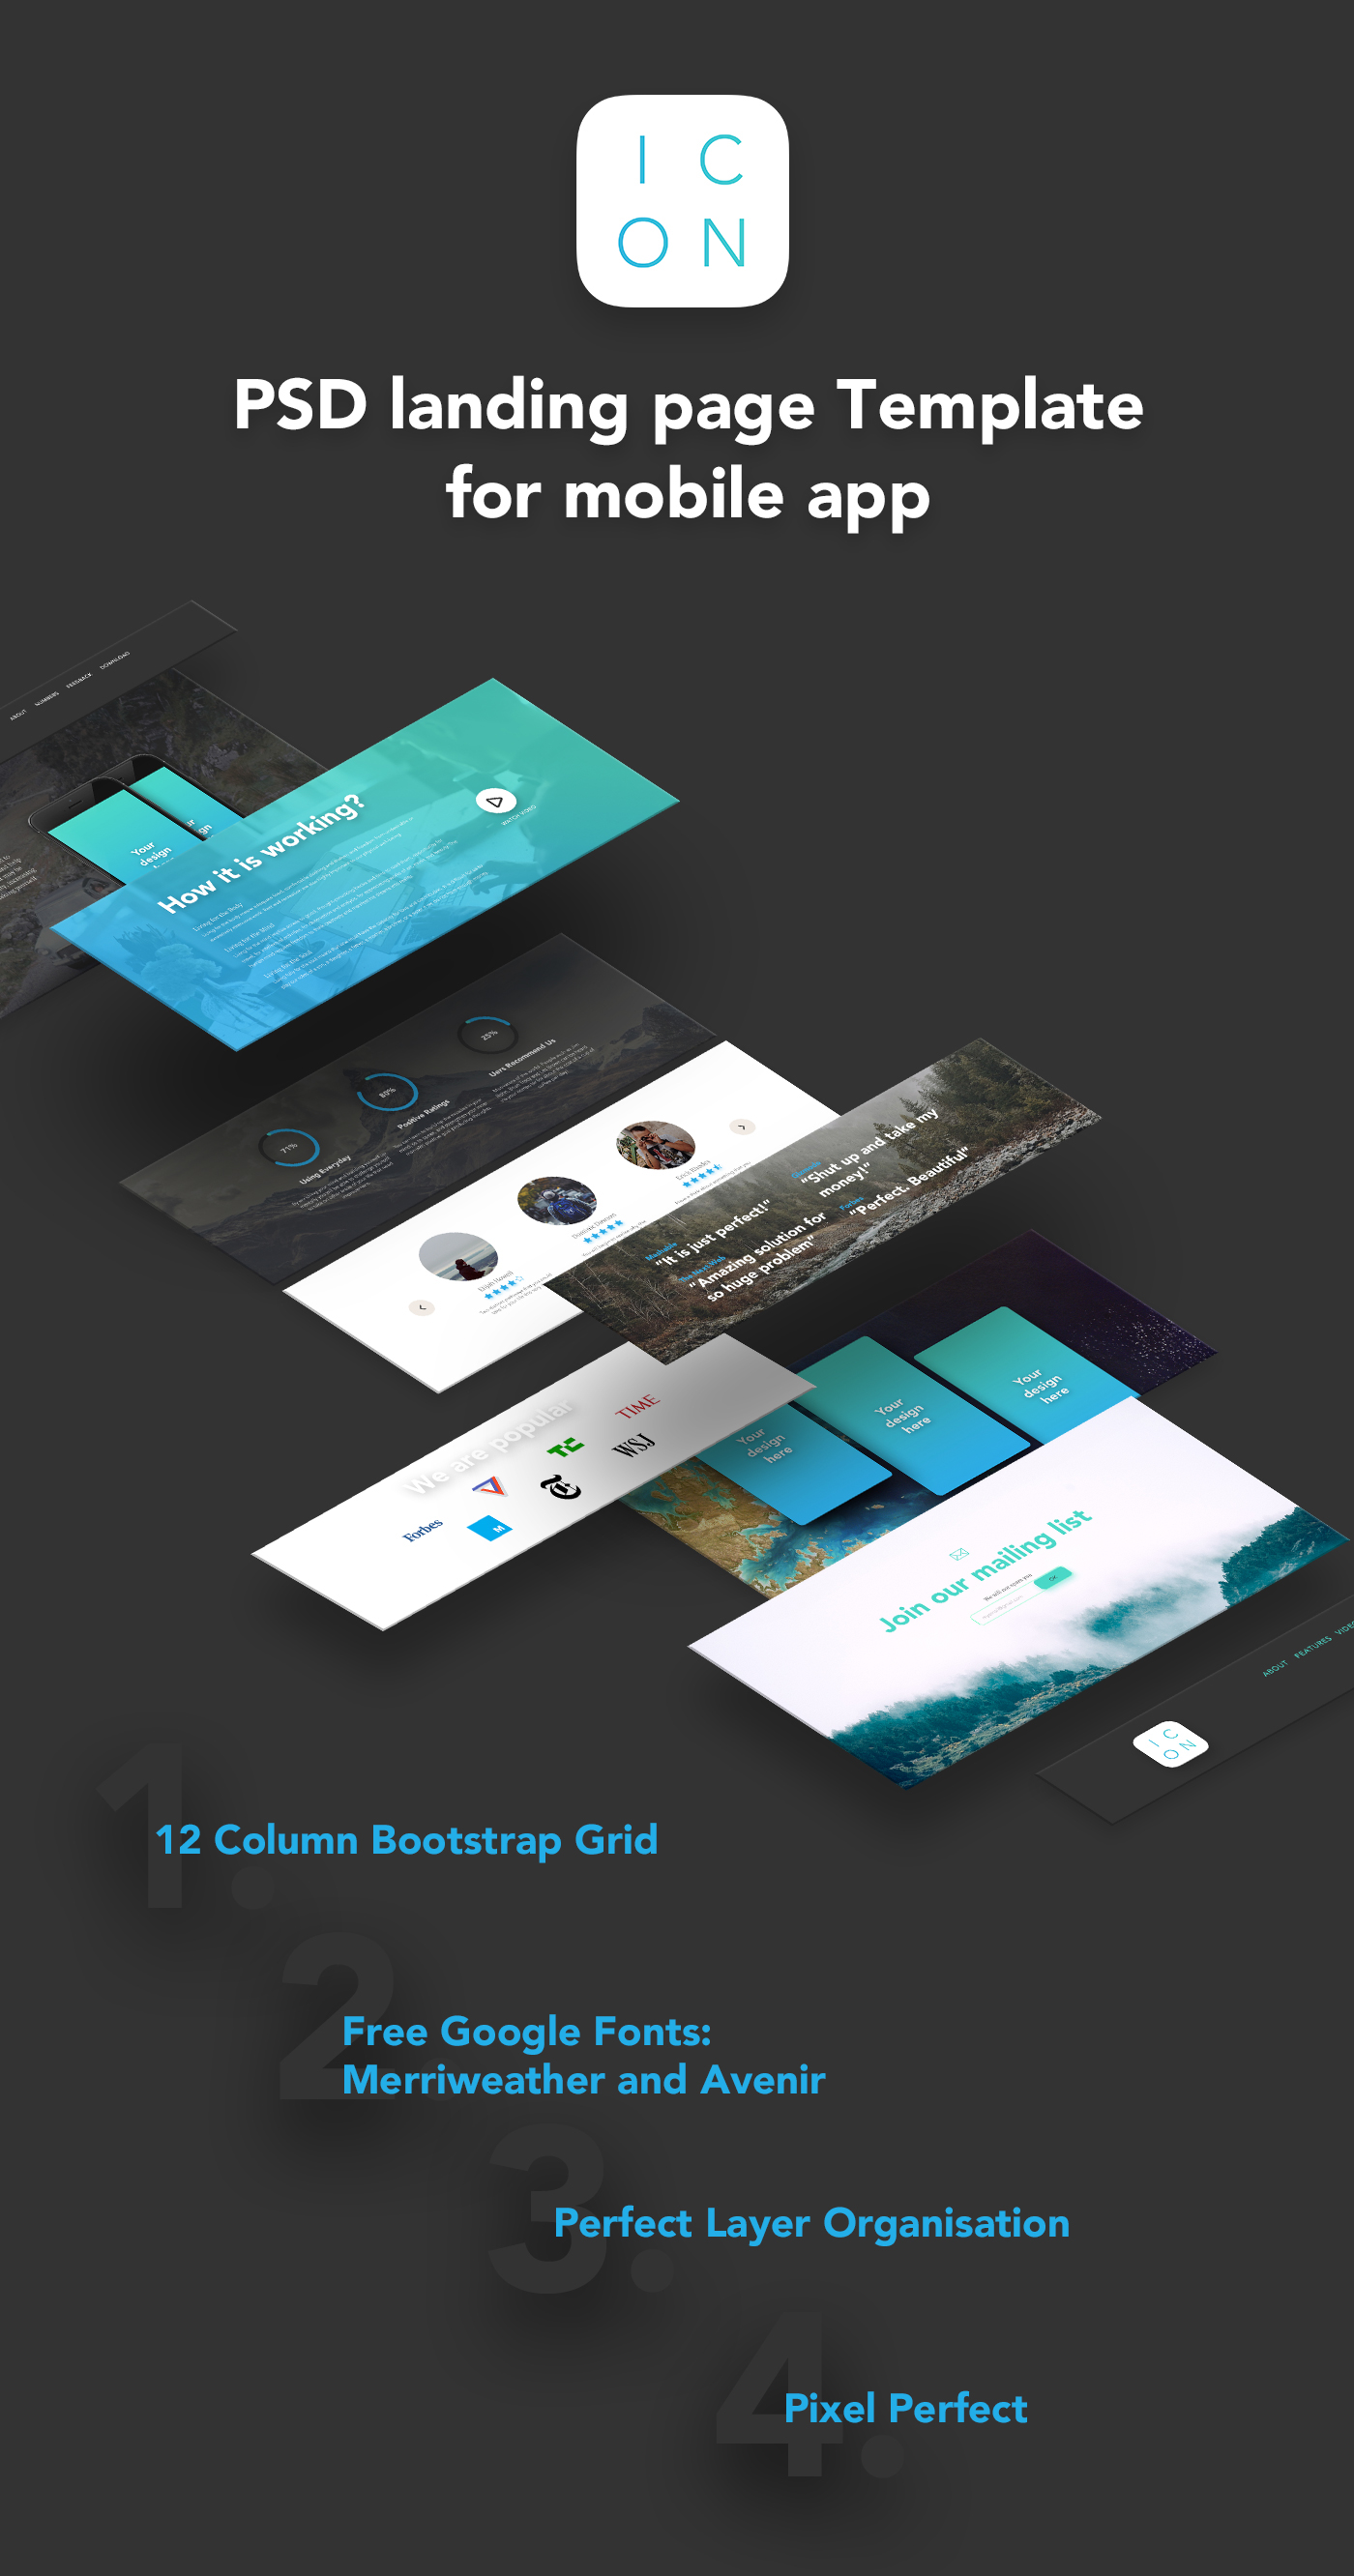 ICON - PSD landing page Template for mobile app on Behance